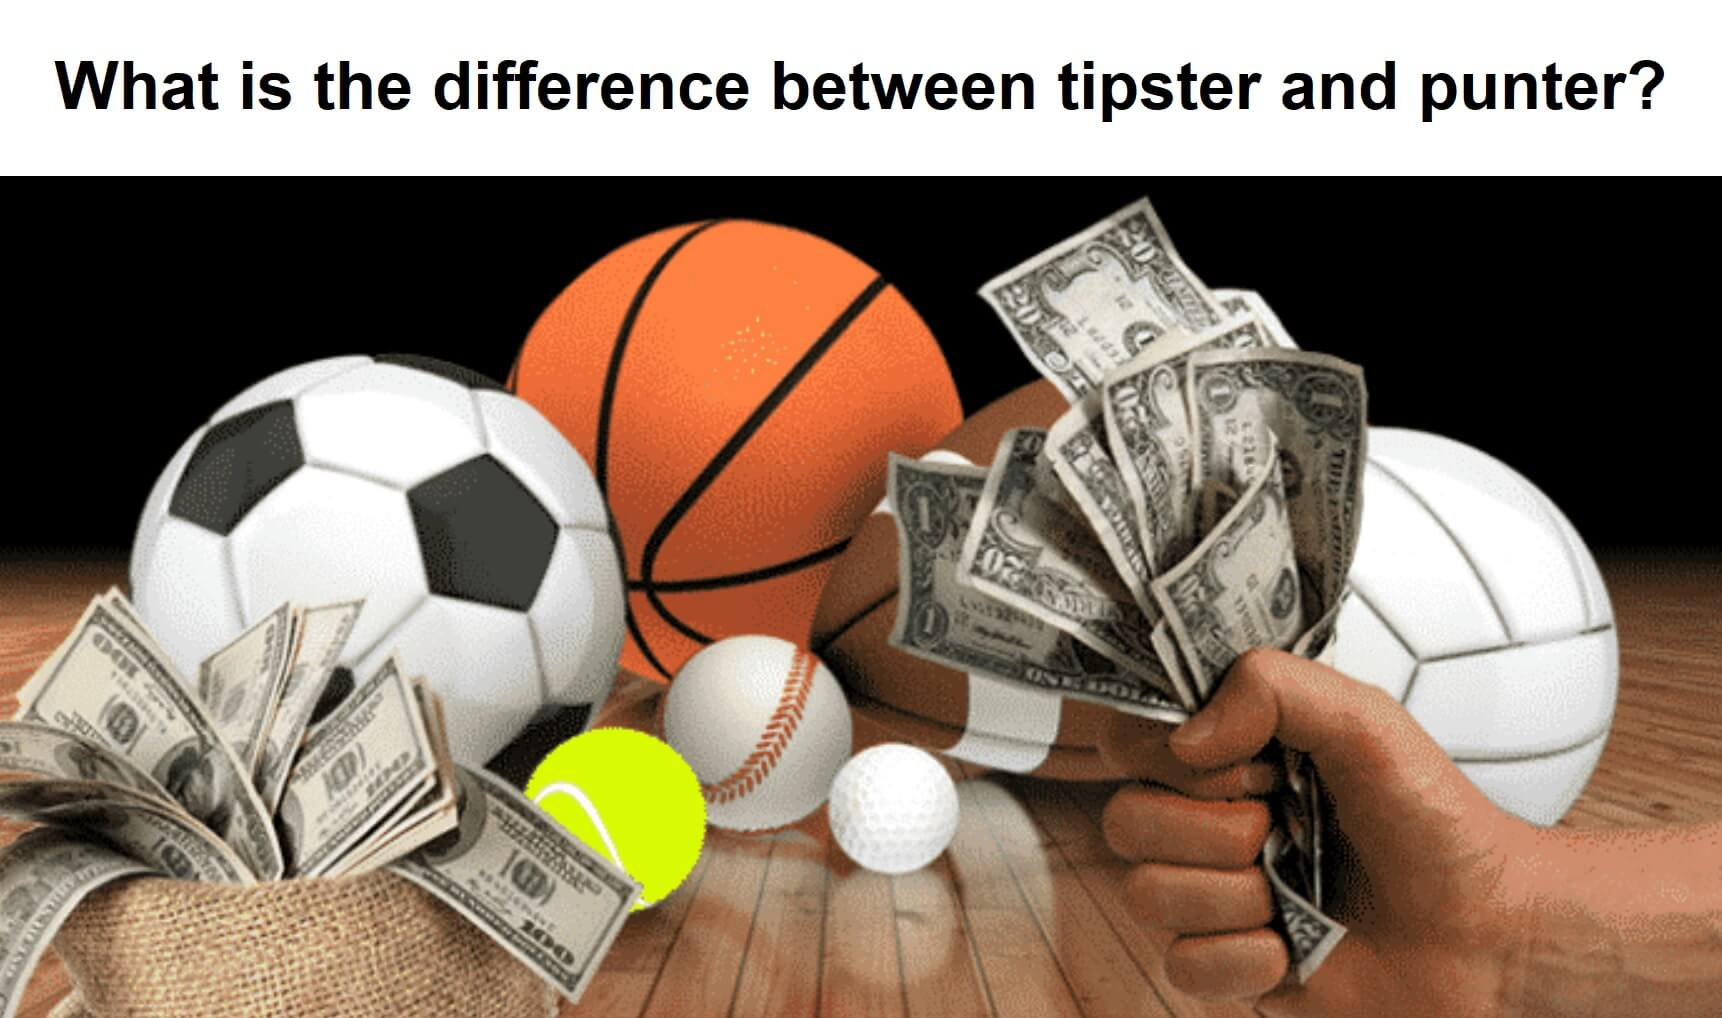 Difference between tipster and punter